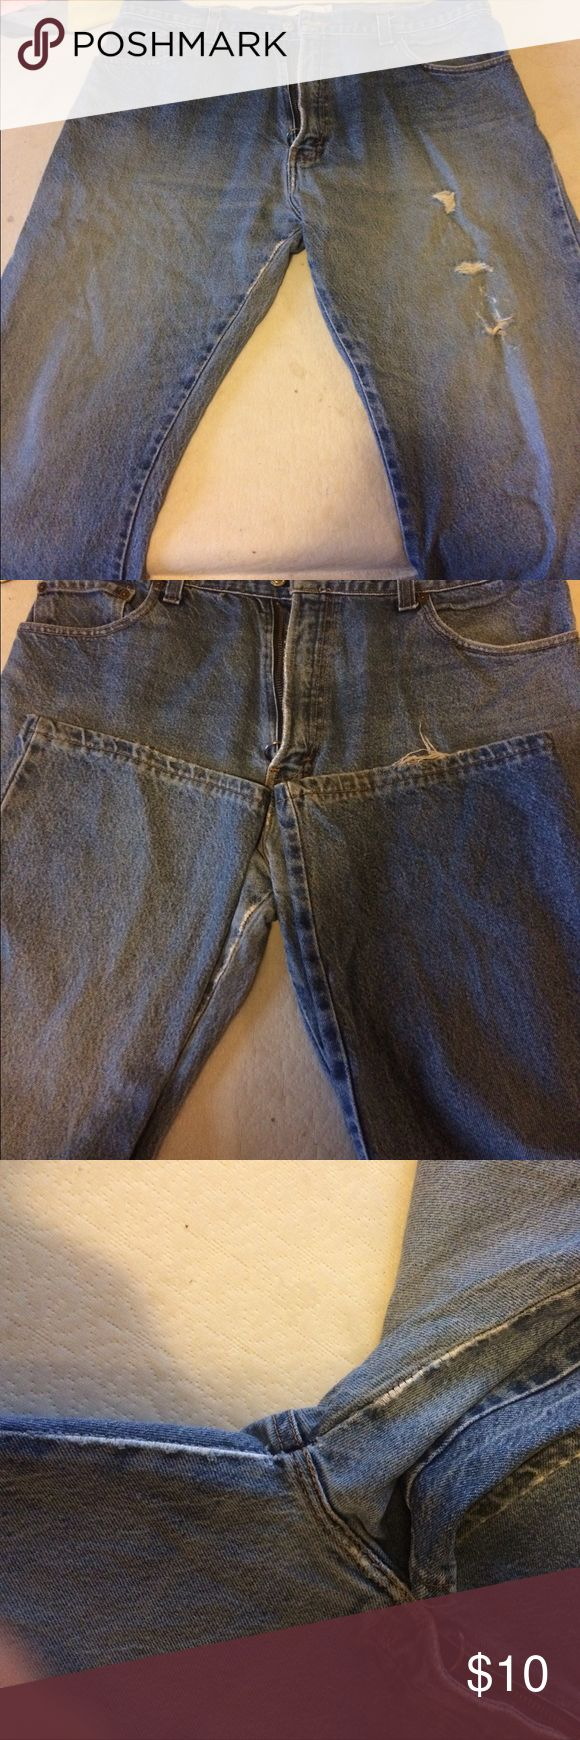 Men's Levi jeans Some wear as shown, nothing major good work jeans, price firm Levi's Jeans Bootcut